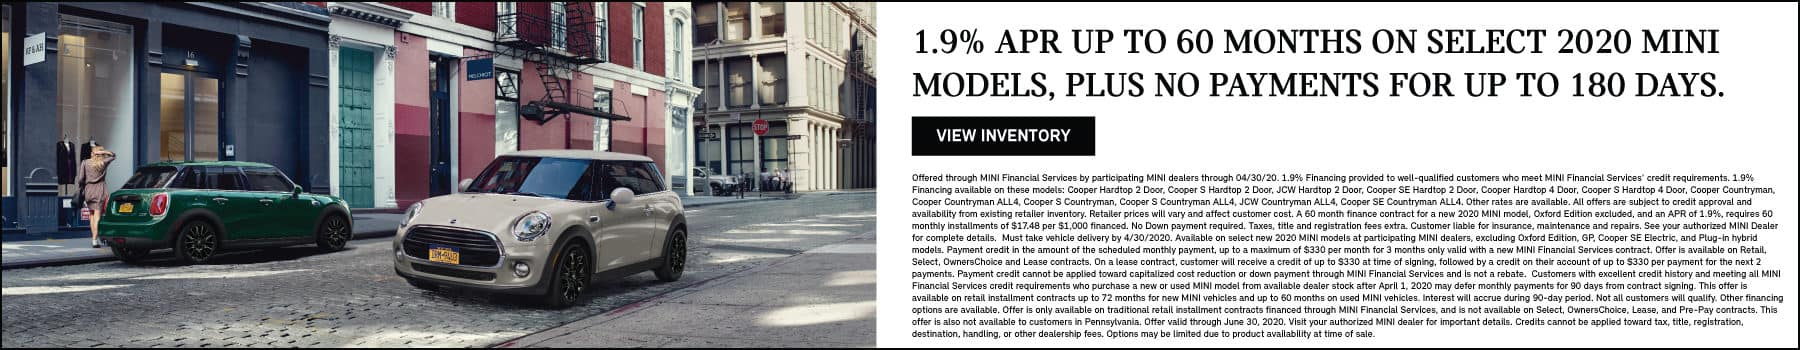 1.9% APR UP TO 60 MONTHS ON SELECT 2020 MINI MODELS, PLUS NO PAYMENTS FOR UP TO 180 DAYS. VIEW INVENTORY BUTTON. SEE DEALER FOR COMPLETE DETAILS.